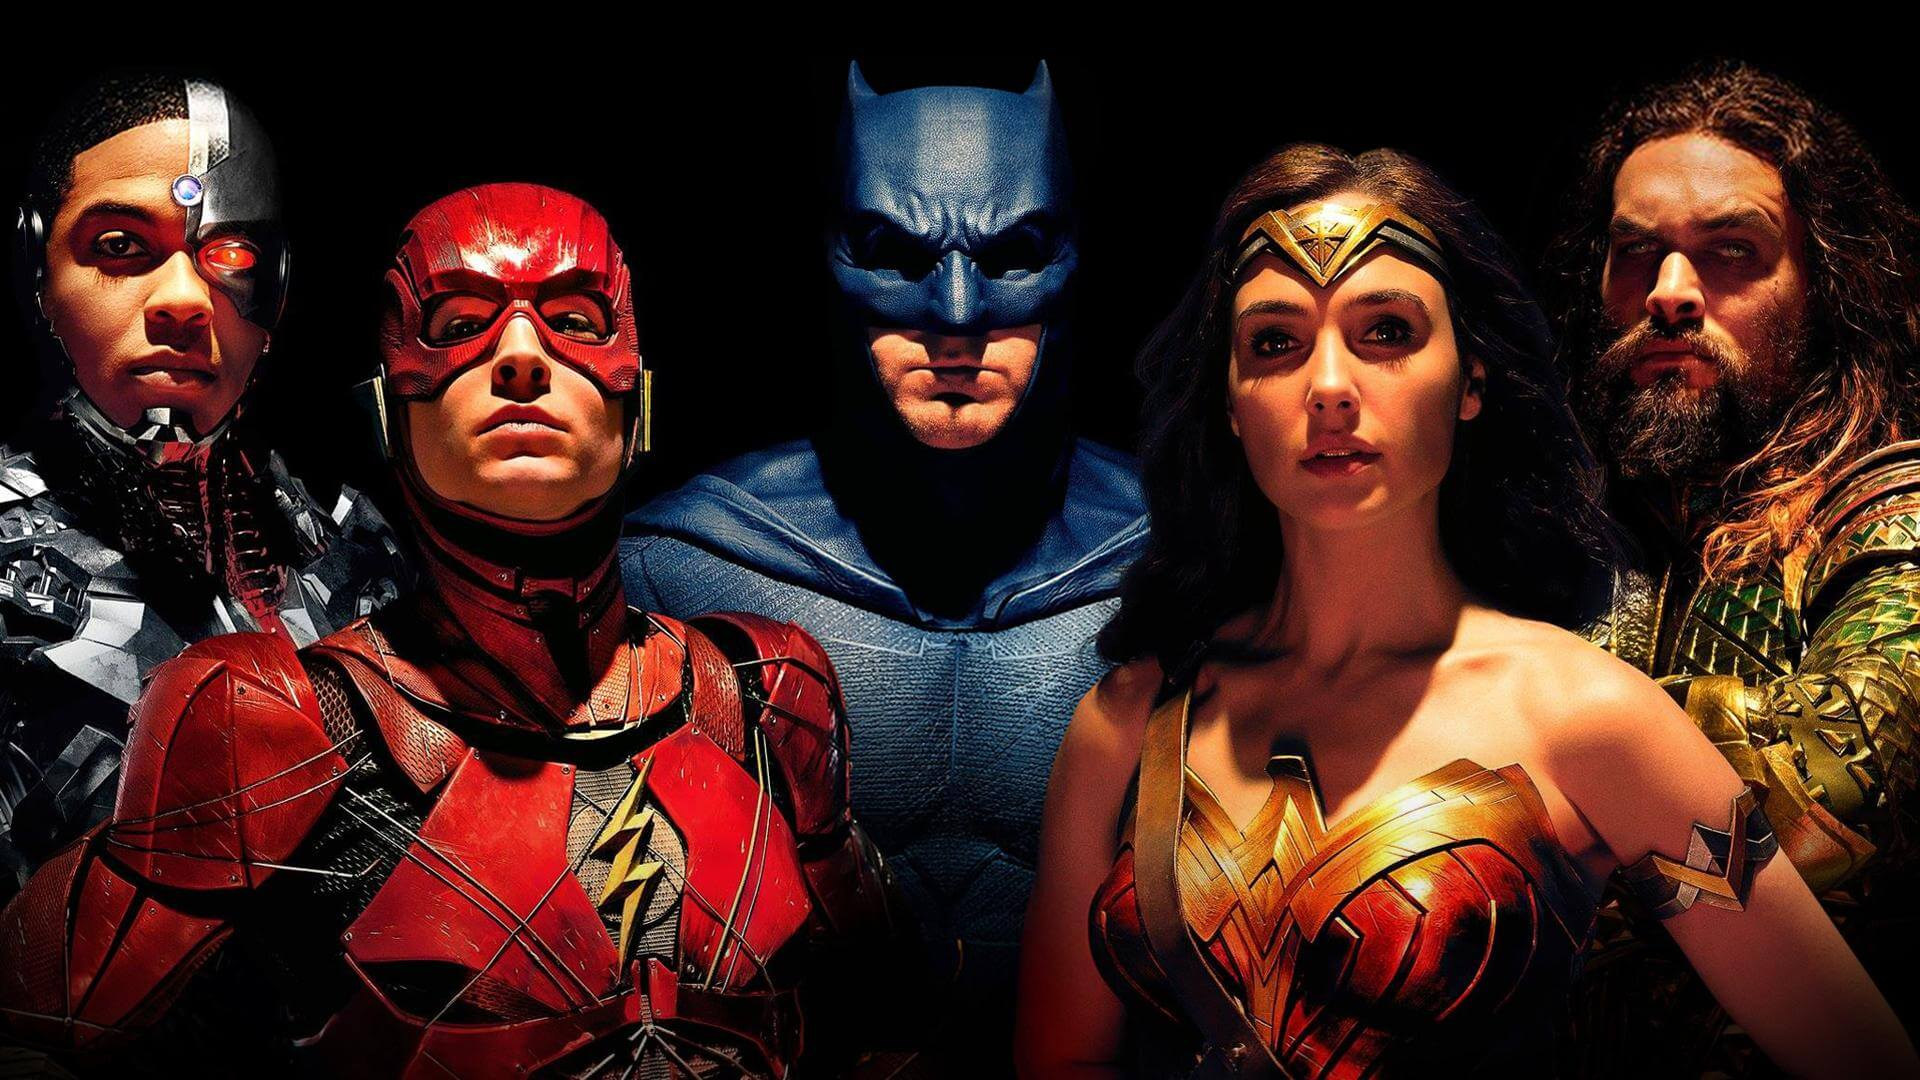 Zack Snyder's Justice League will be a 4-hour movie